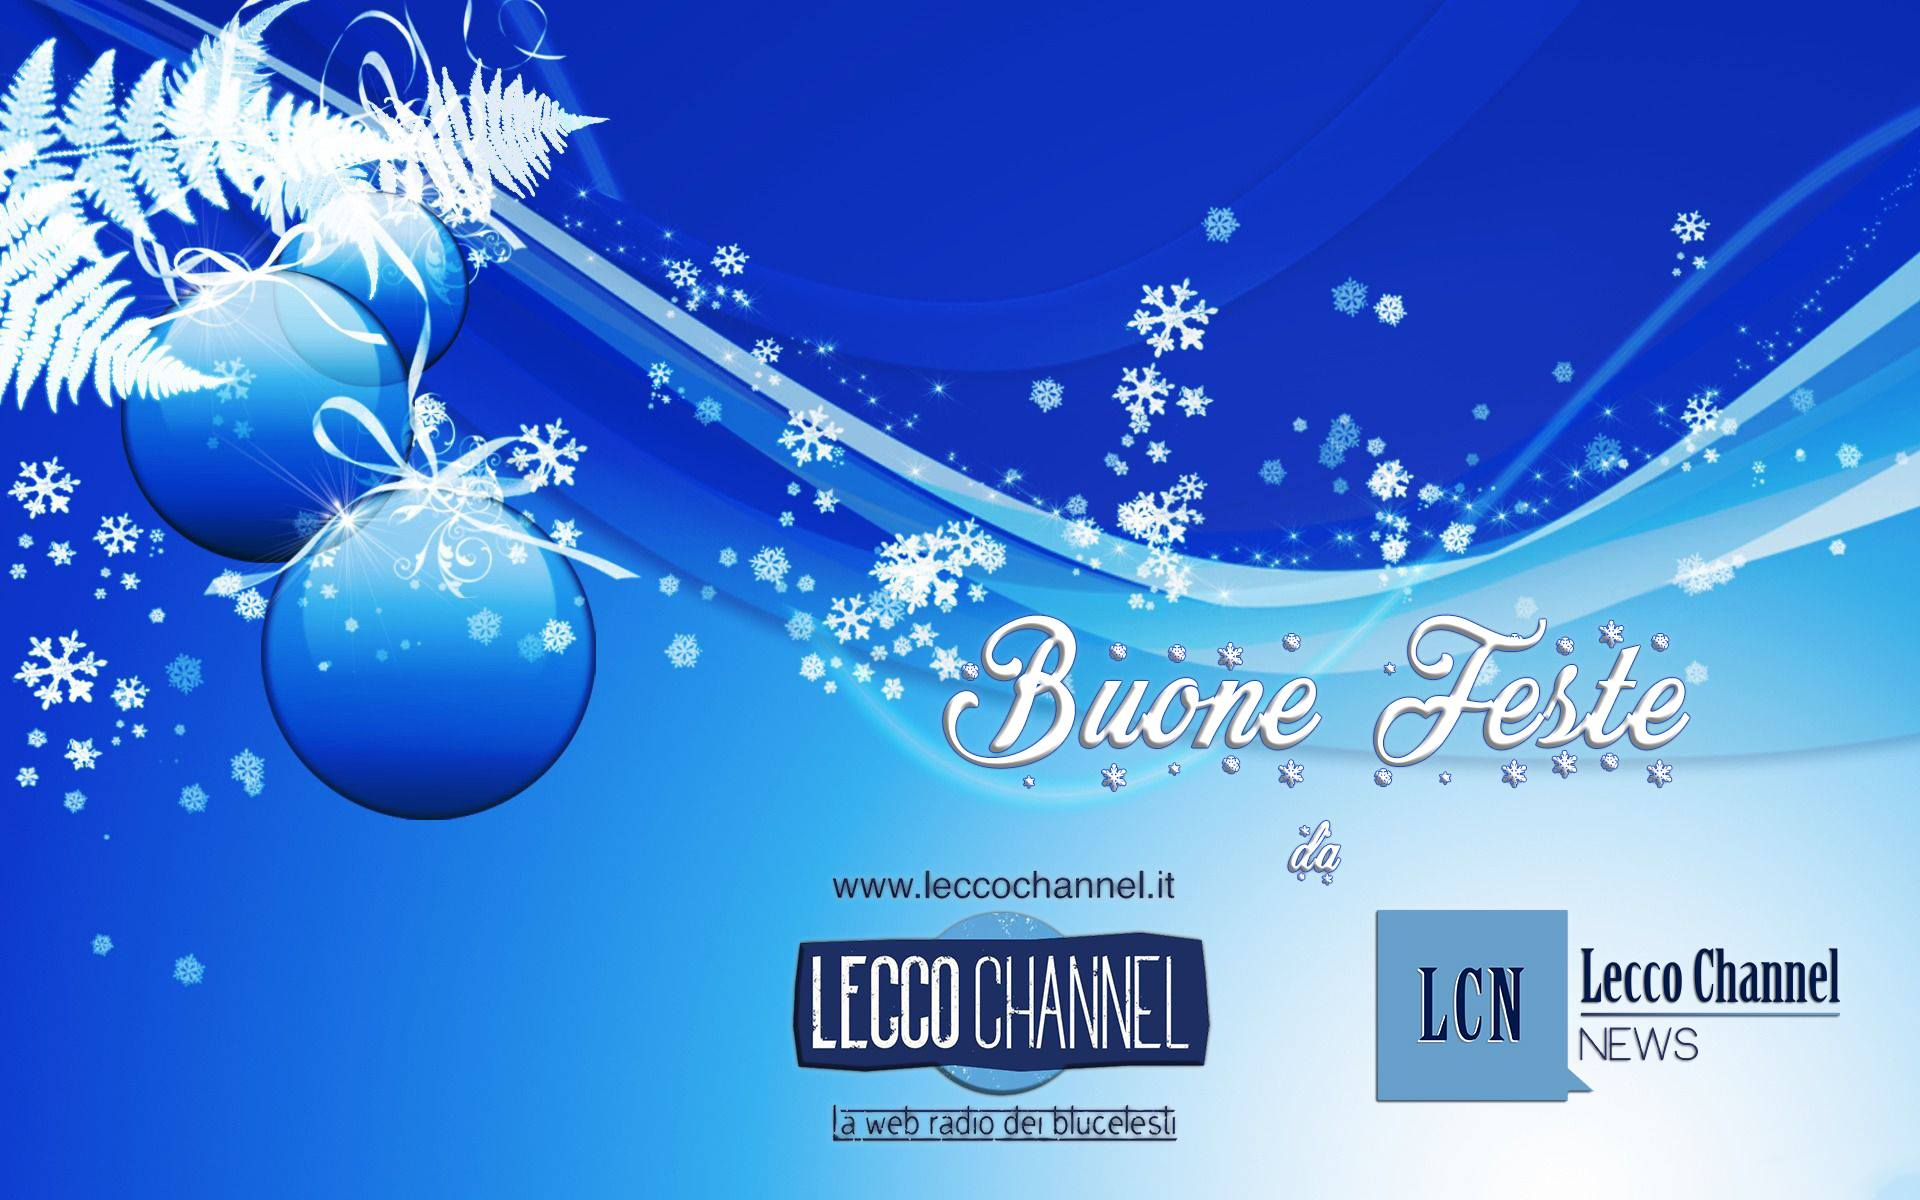 natale lecco channel news